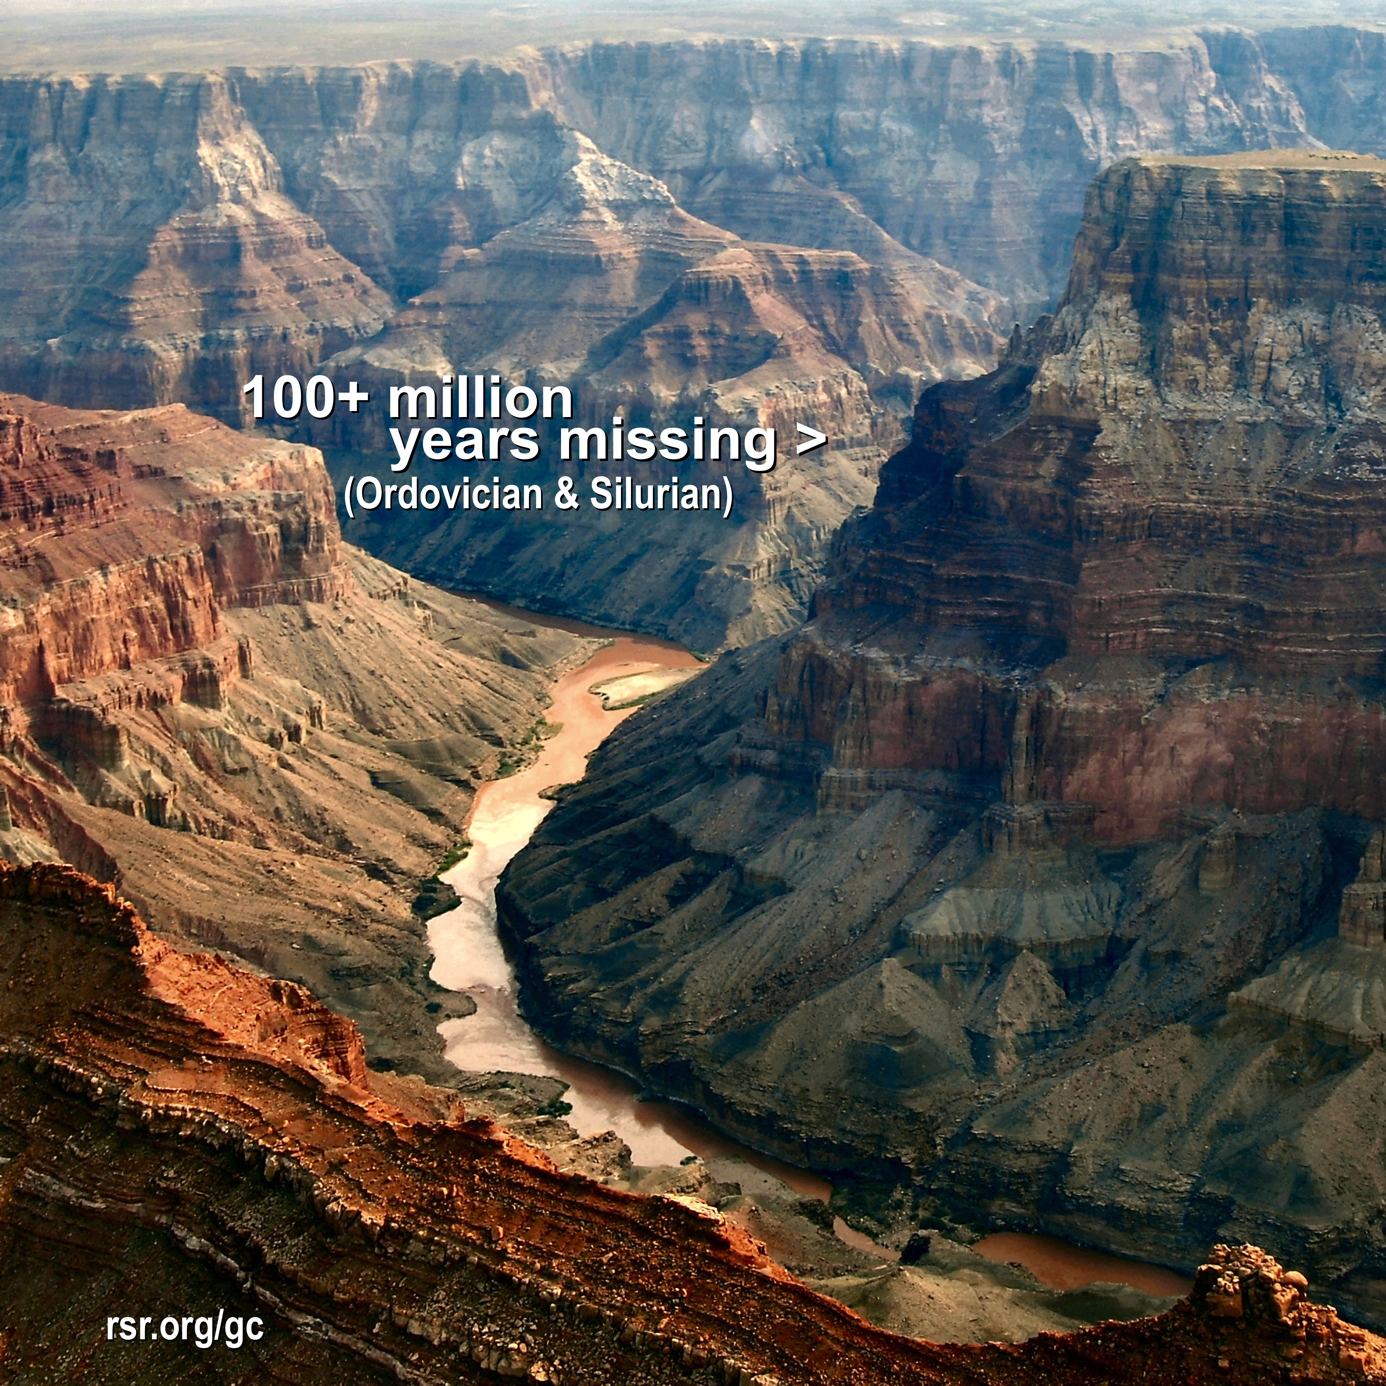 Grand Canyon missing Ordovician and Silurian